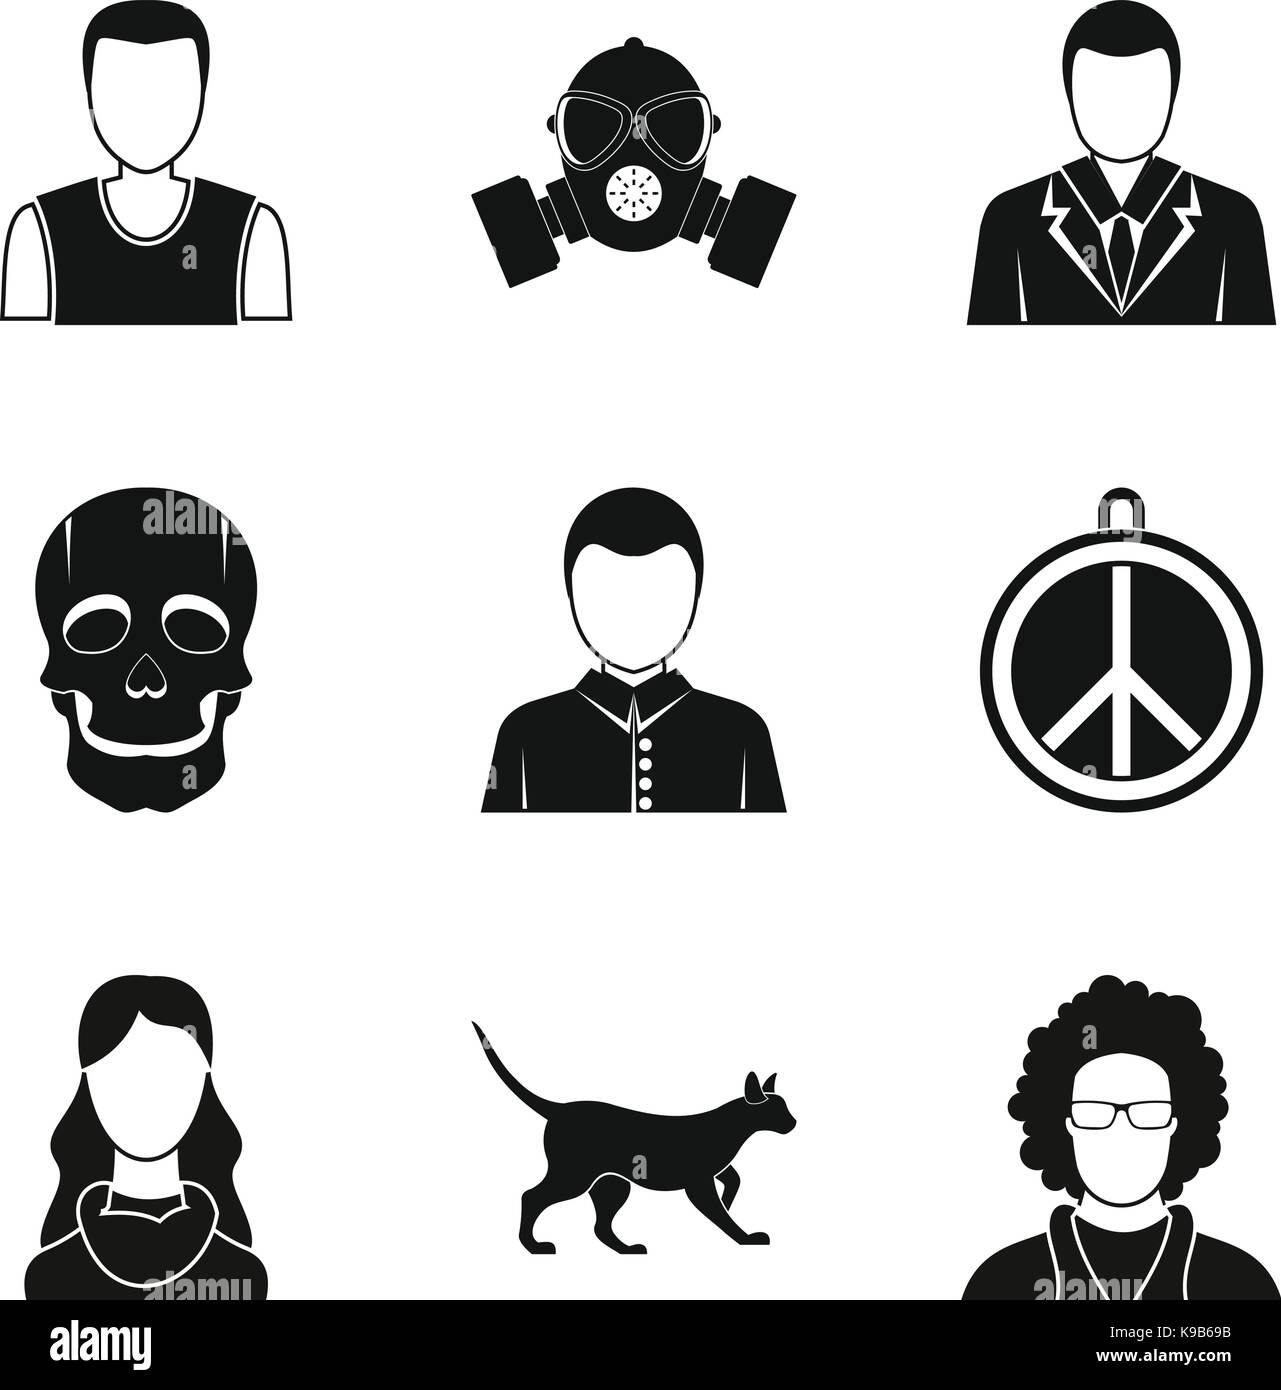 Pretender icons set, simple style - Stock Image